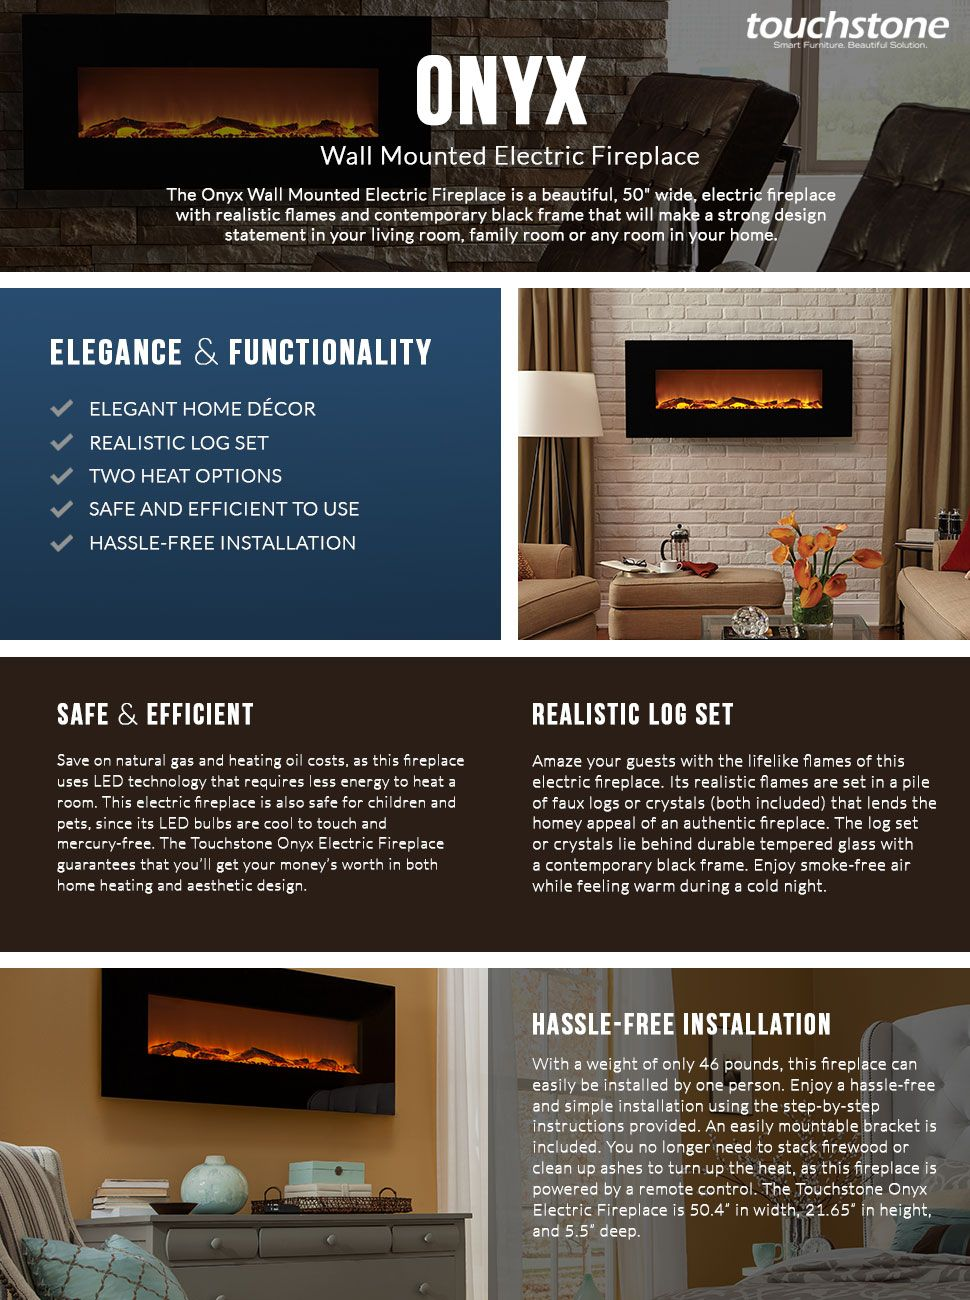 Functionality and elegance come together with Touchstone Onyx Electric  Fireplace! - Amazon.com: Touchstone 80001 Onyx Wall Mounted Electric Fireplace